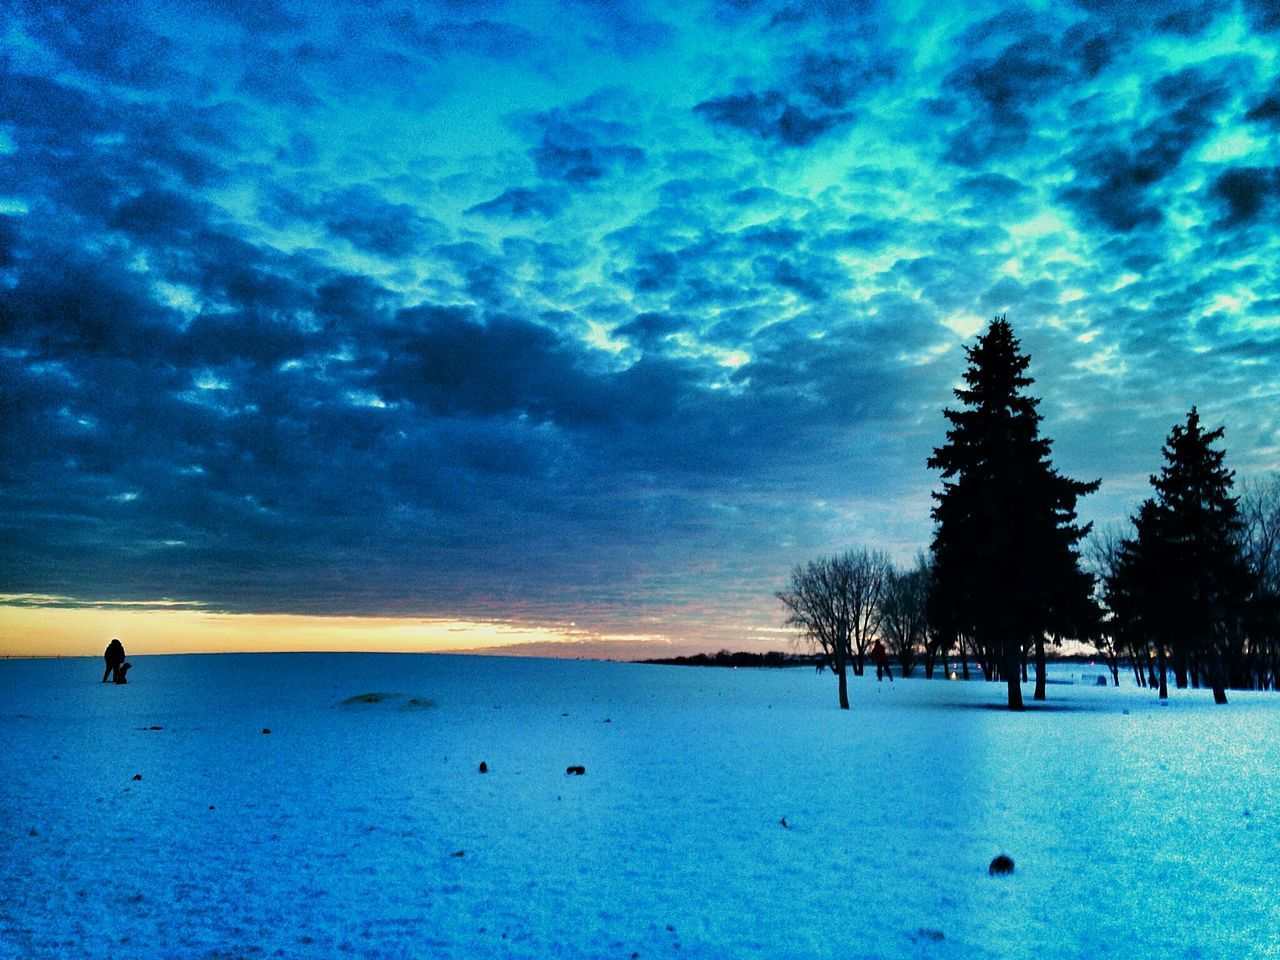 beauty in nature, nature, scenics, tranquility, sky, tranquil scene, tree, silhouette, outdoors, cold temperature, winter, blue, cloud - sky, sunset, water, sea, no people, snow, day